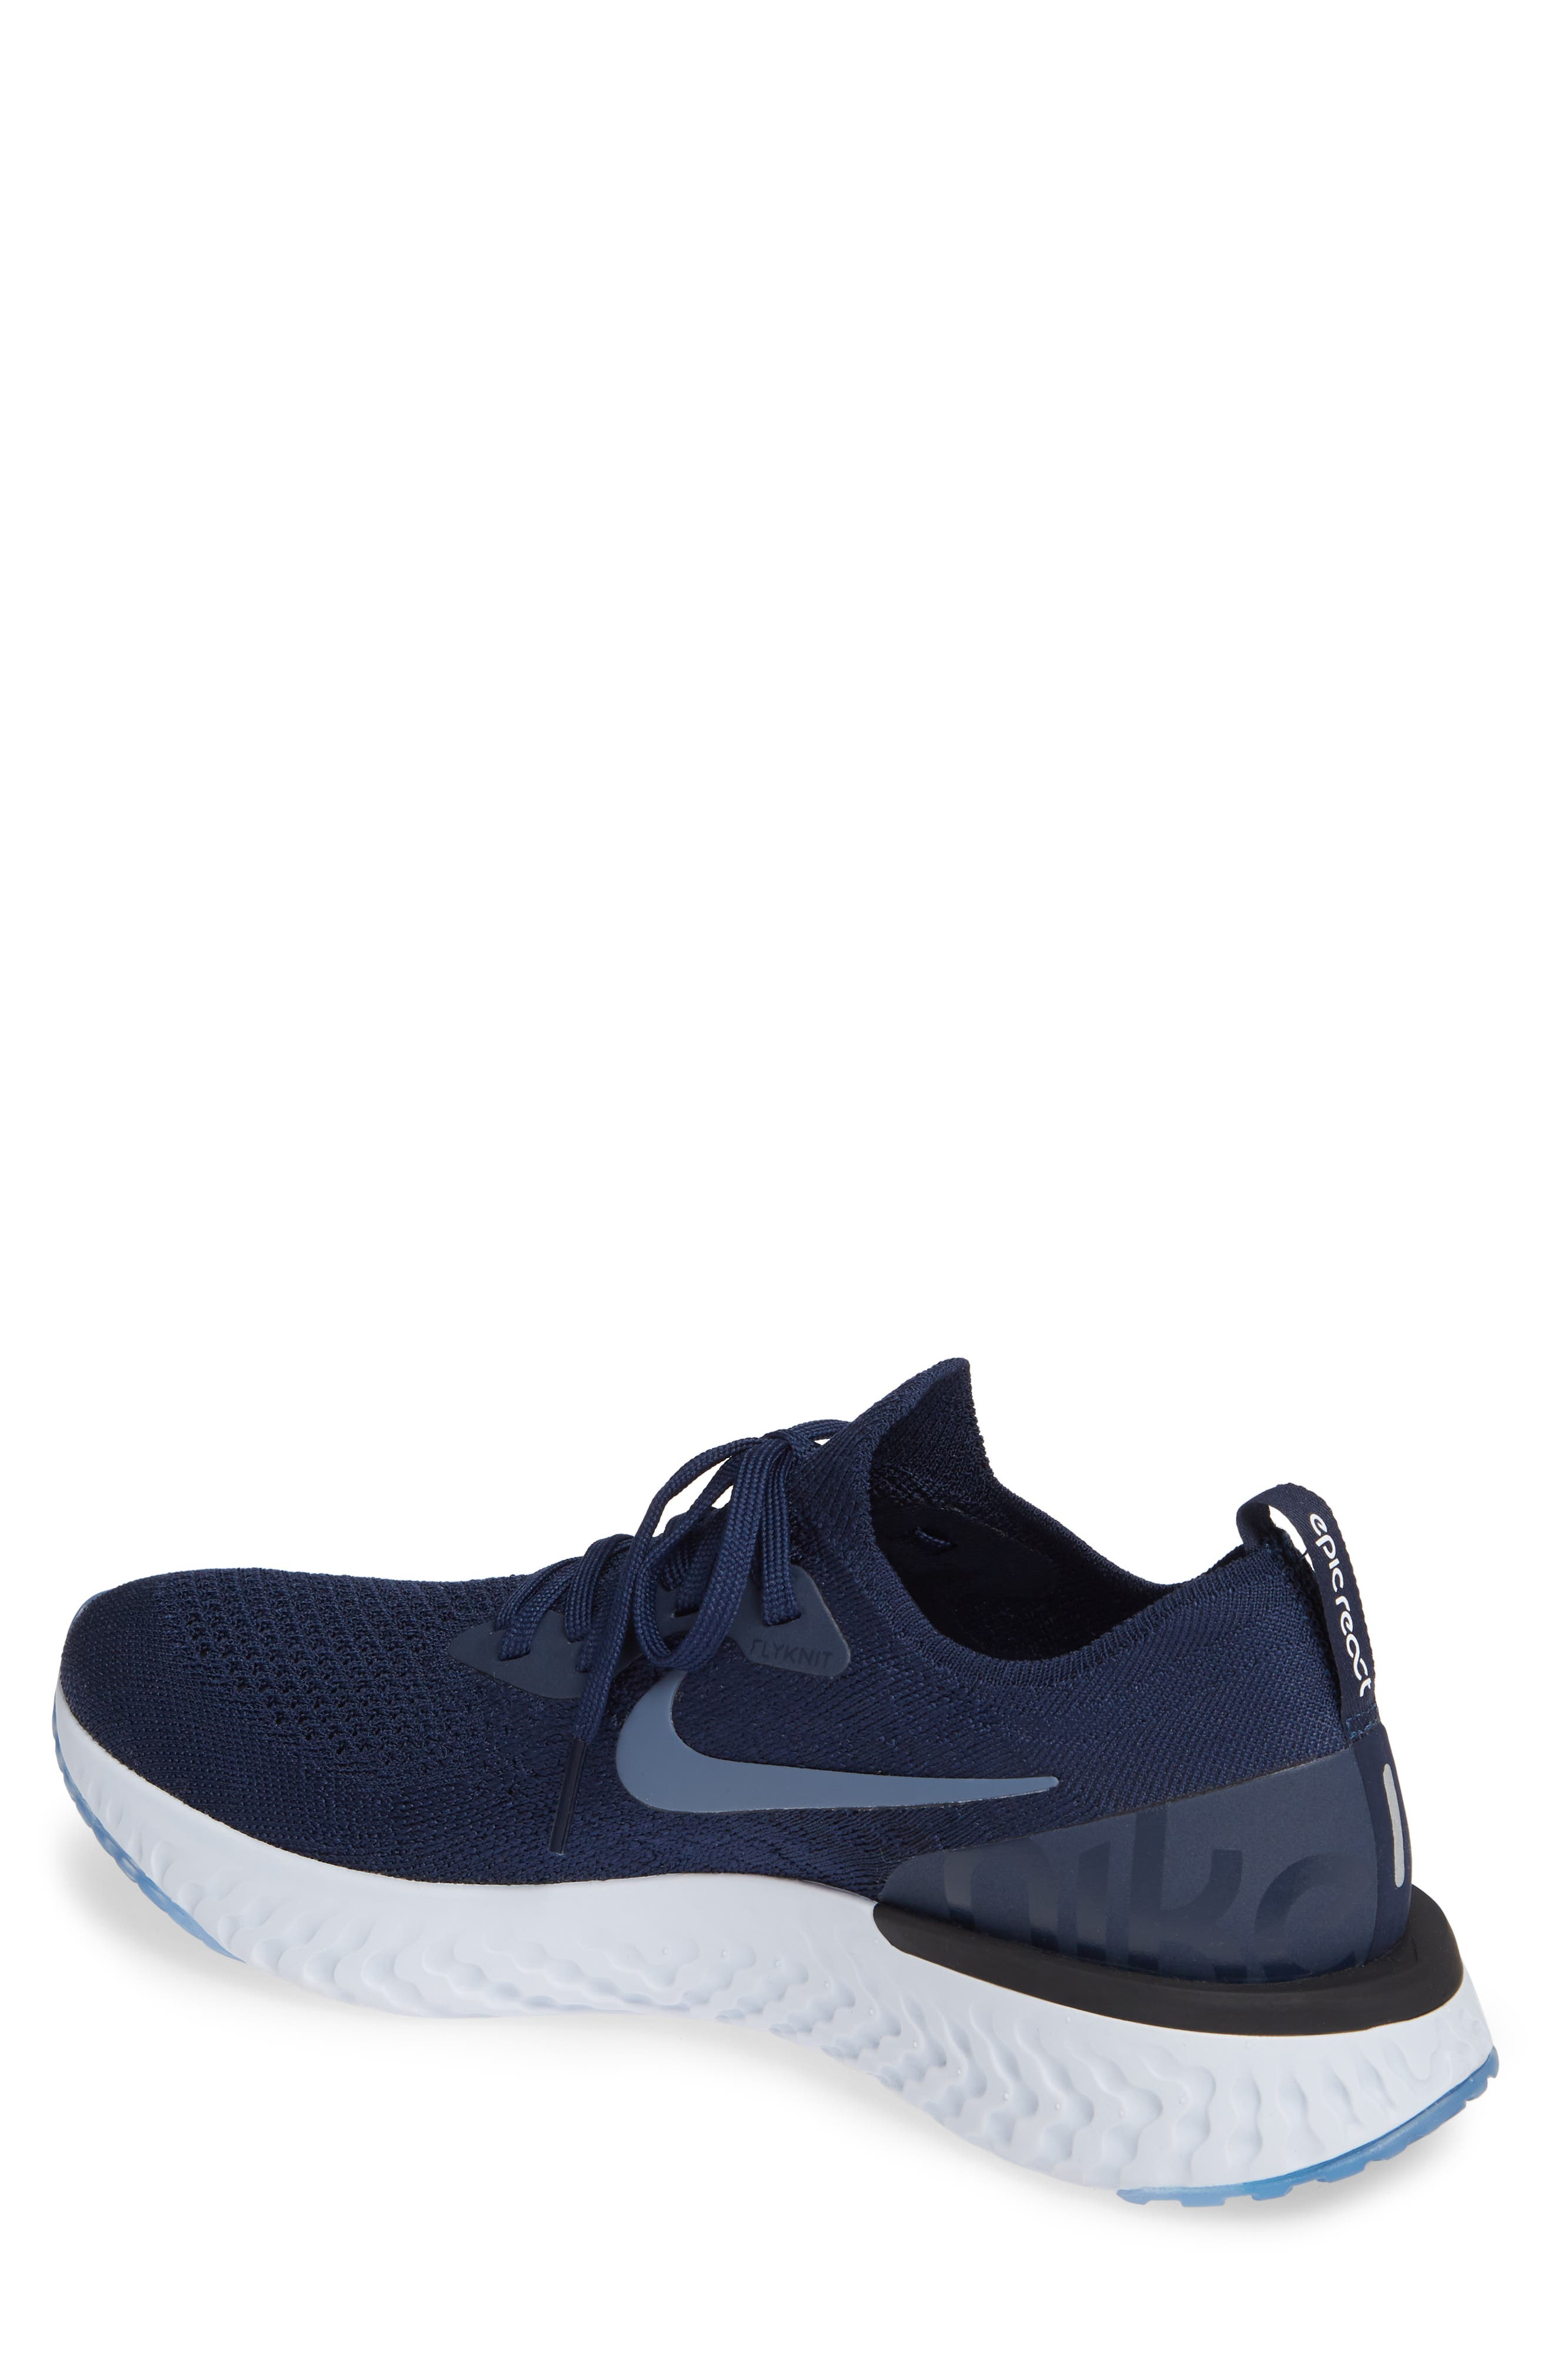 Epic React Flyknit Running Shoe,                             Alternate thumbnail 2, color,                             COLLEGE NAVY/ BLUE/ GREY